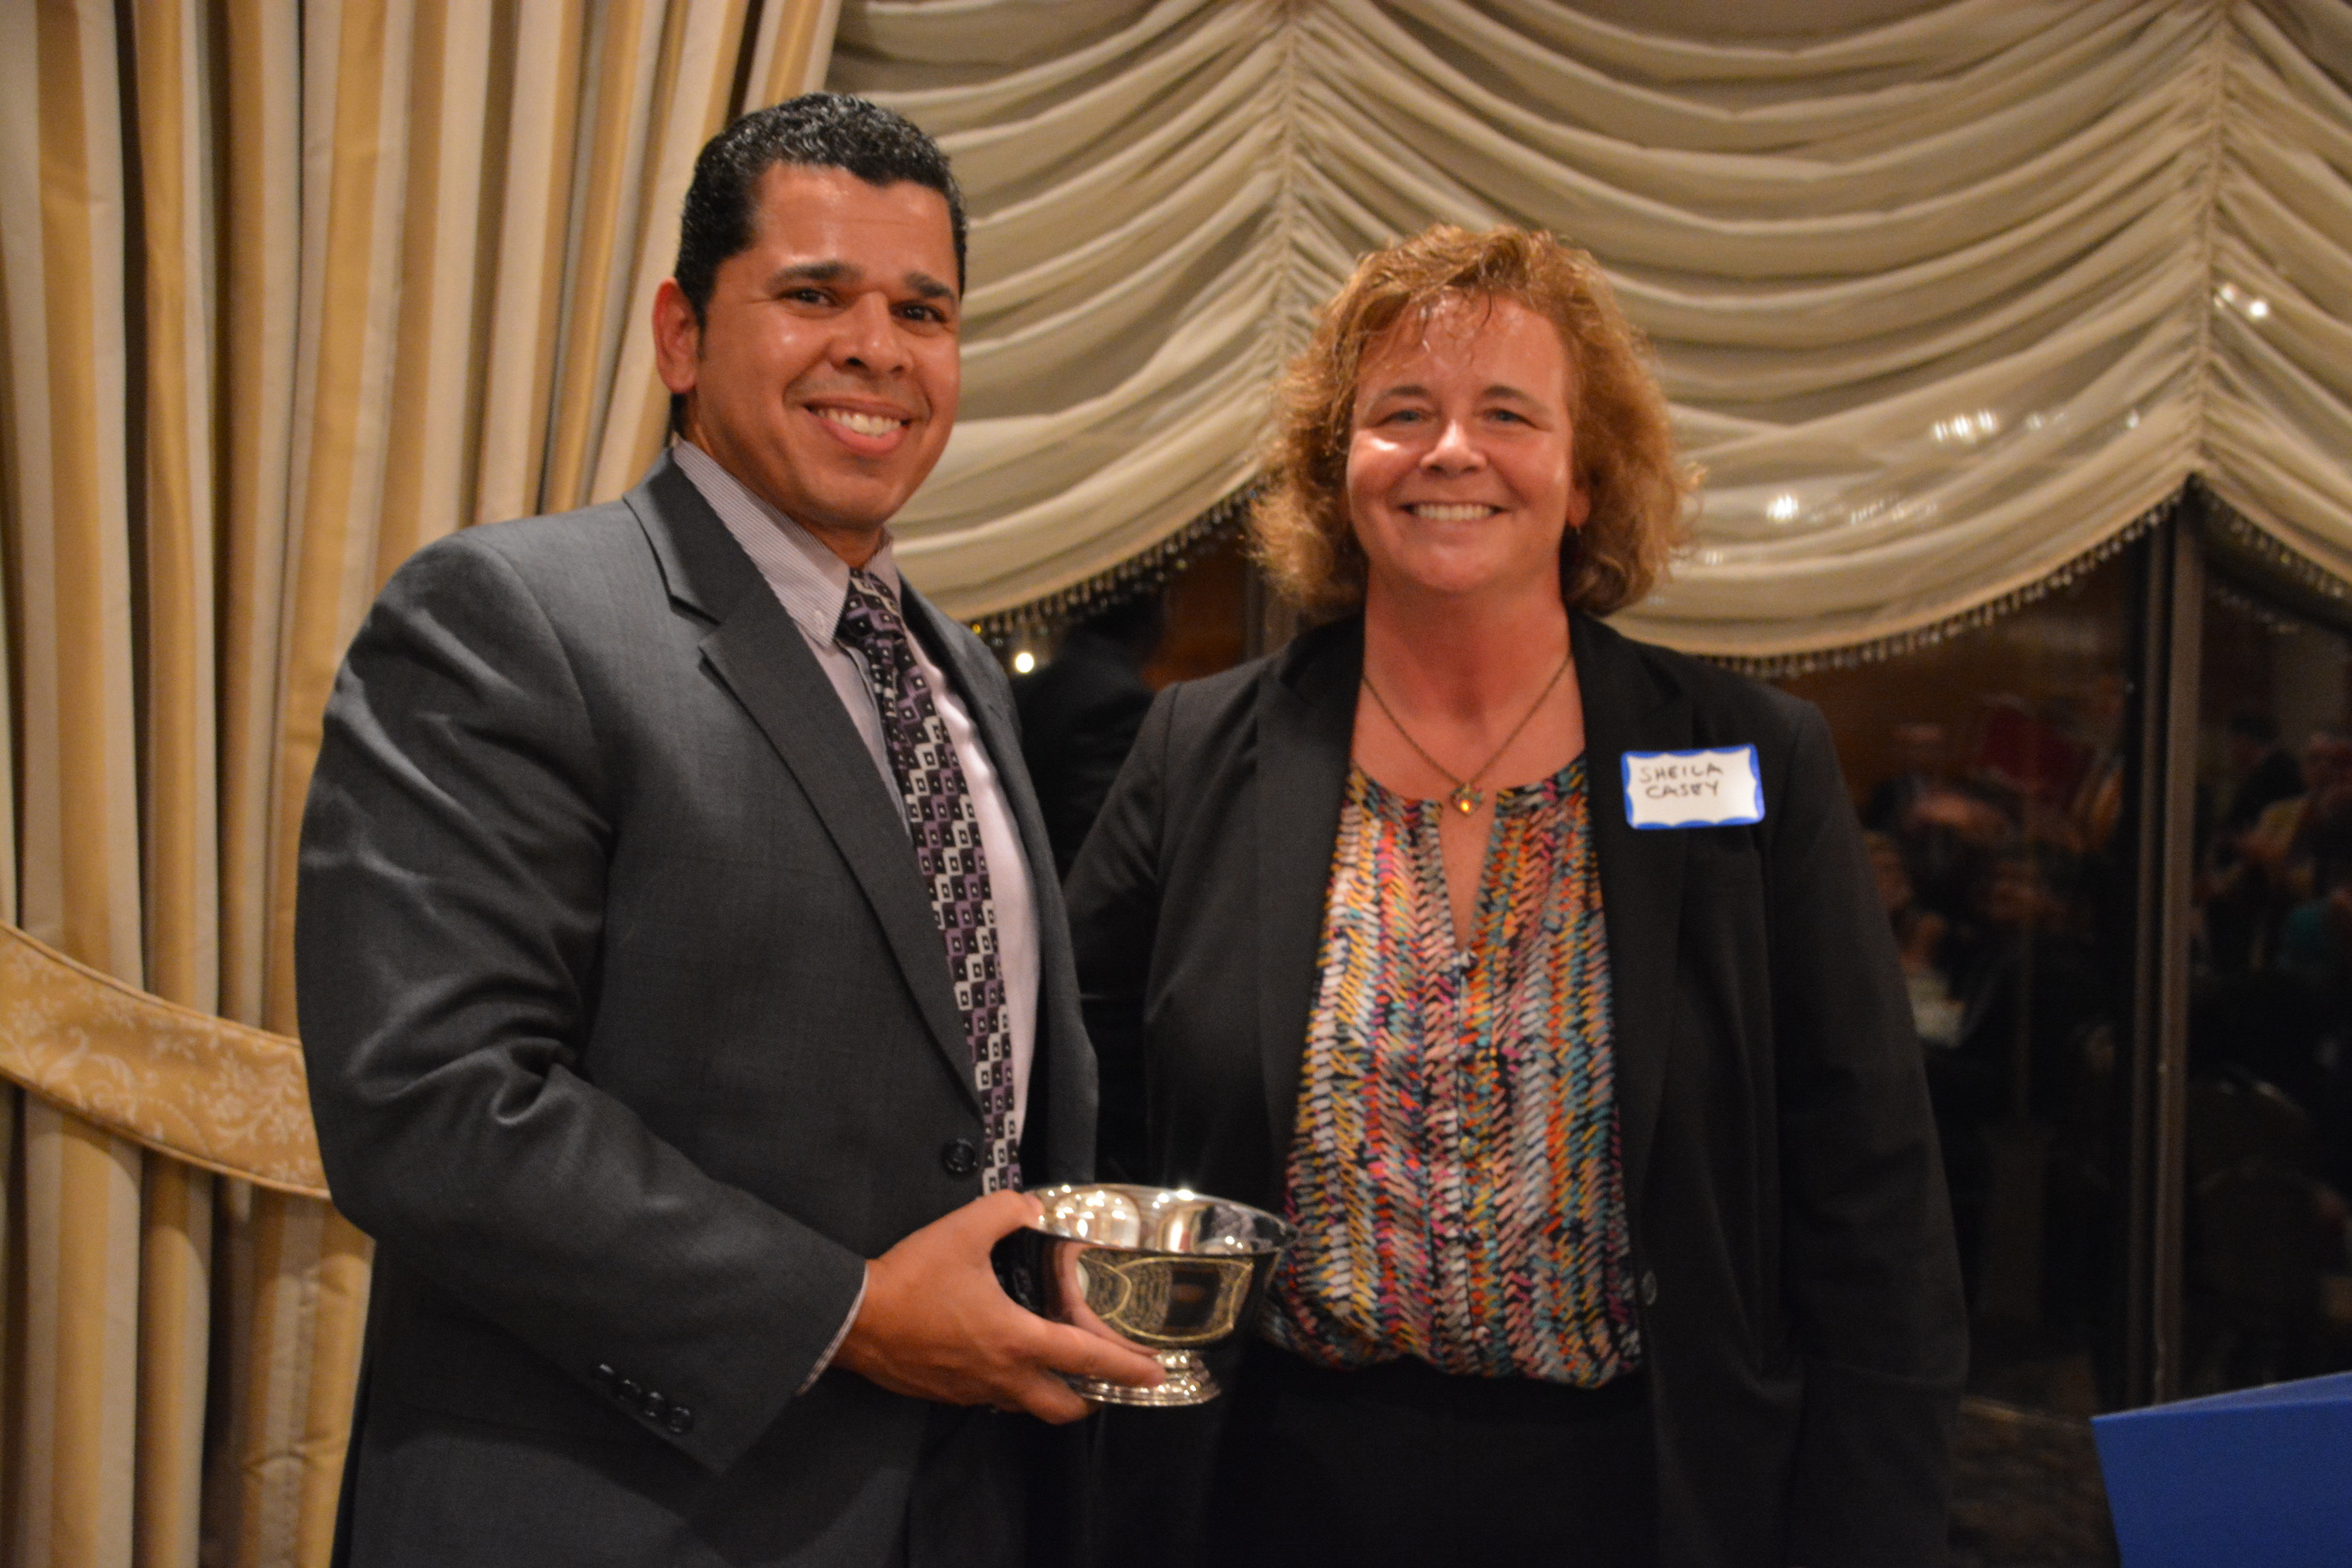 The LBA's Sheila Casey awarded this year's Liberty Bell Award to Juan Bonilla, Deputy Director of Lawrence Community Works